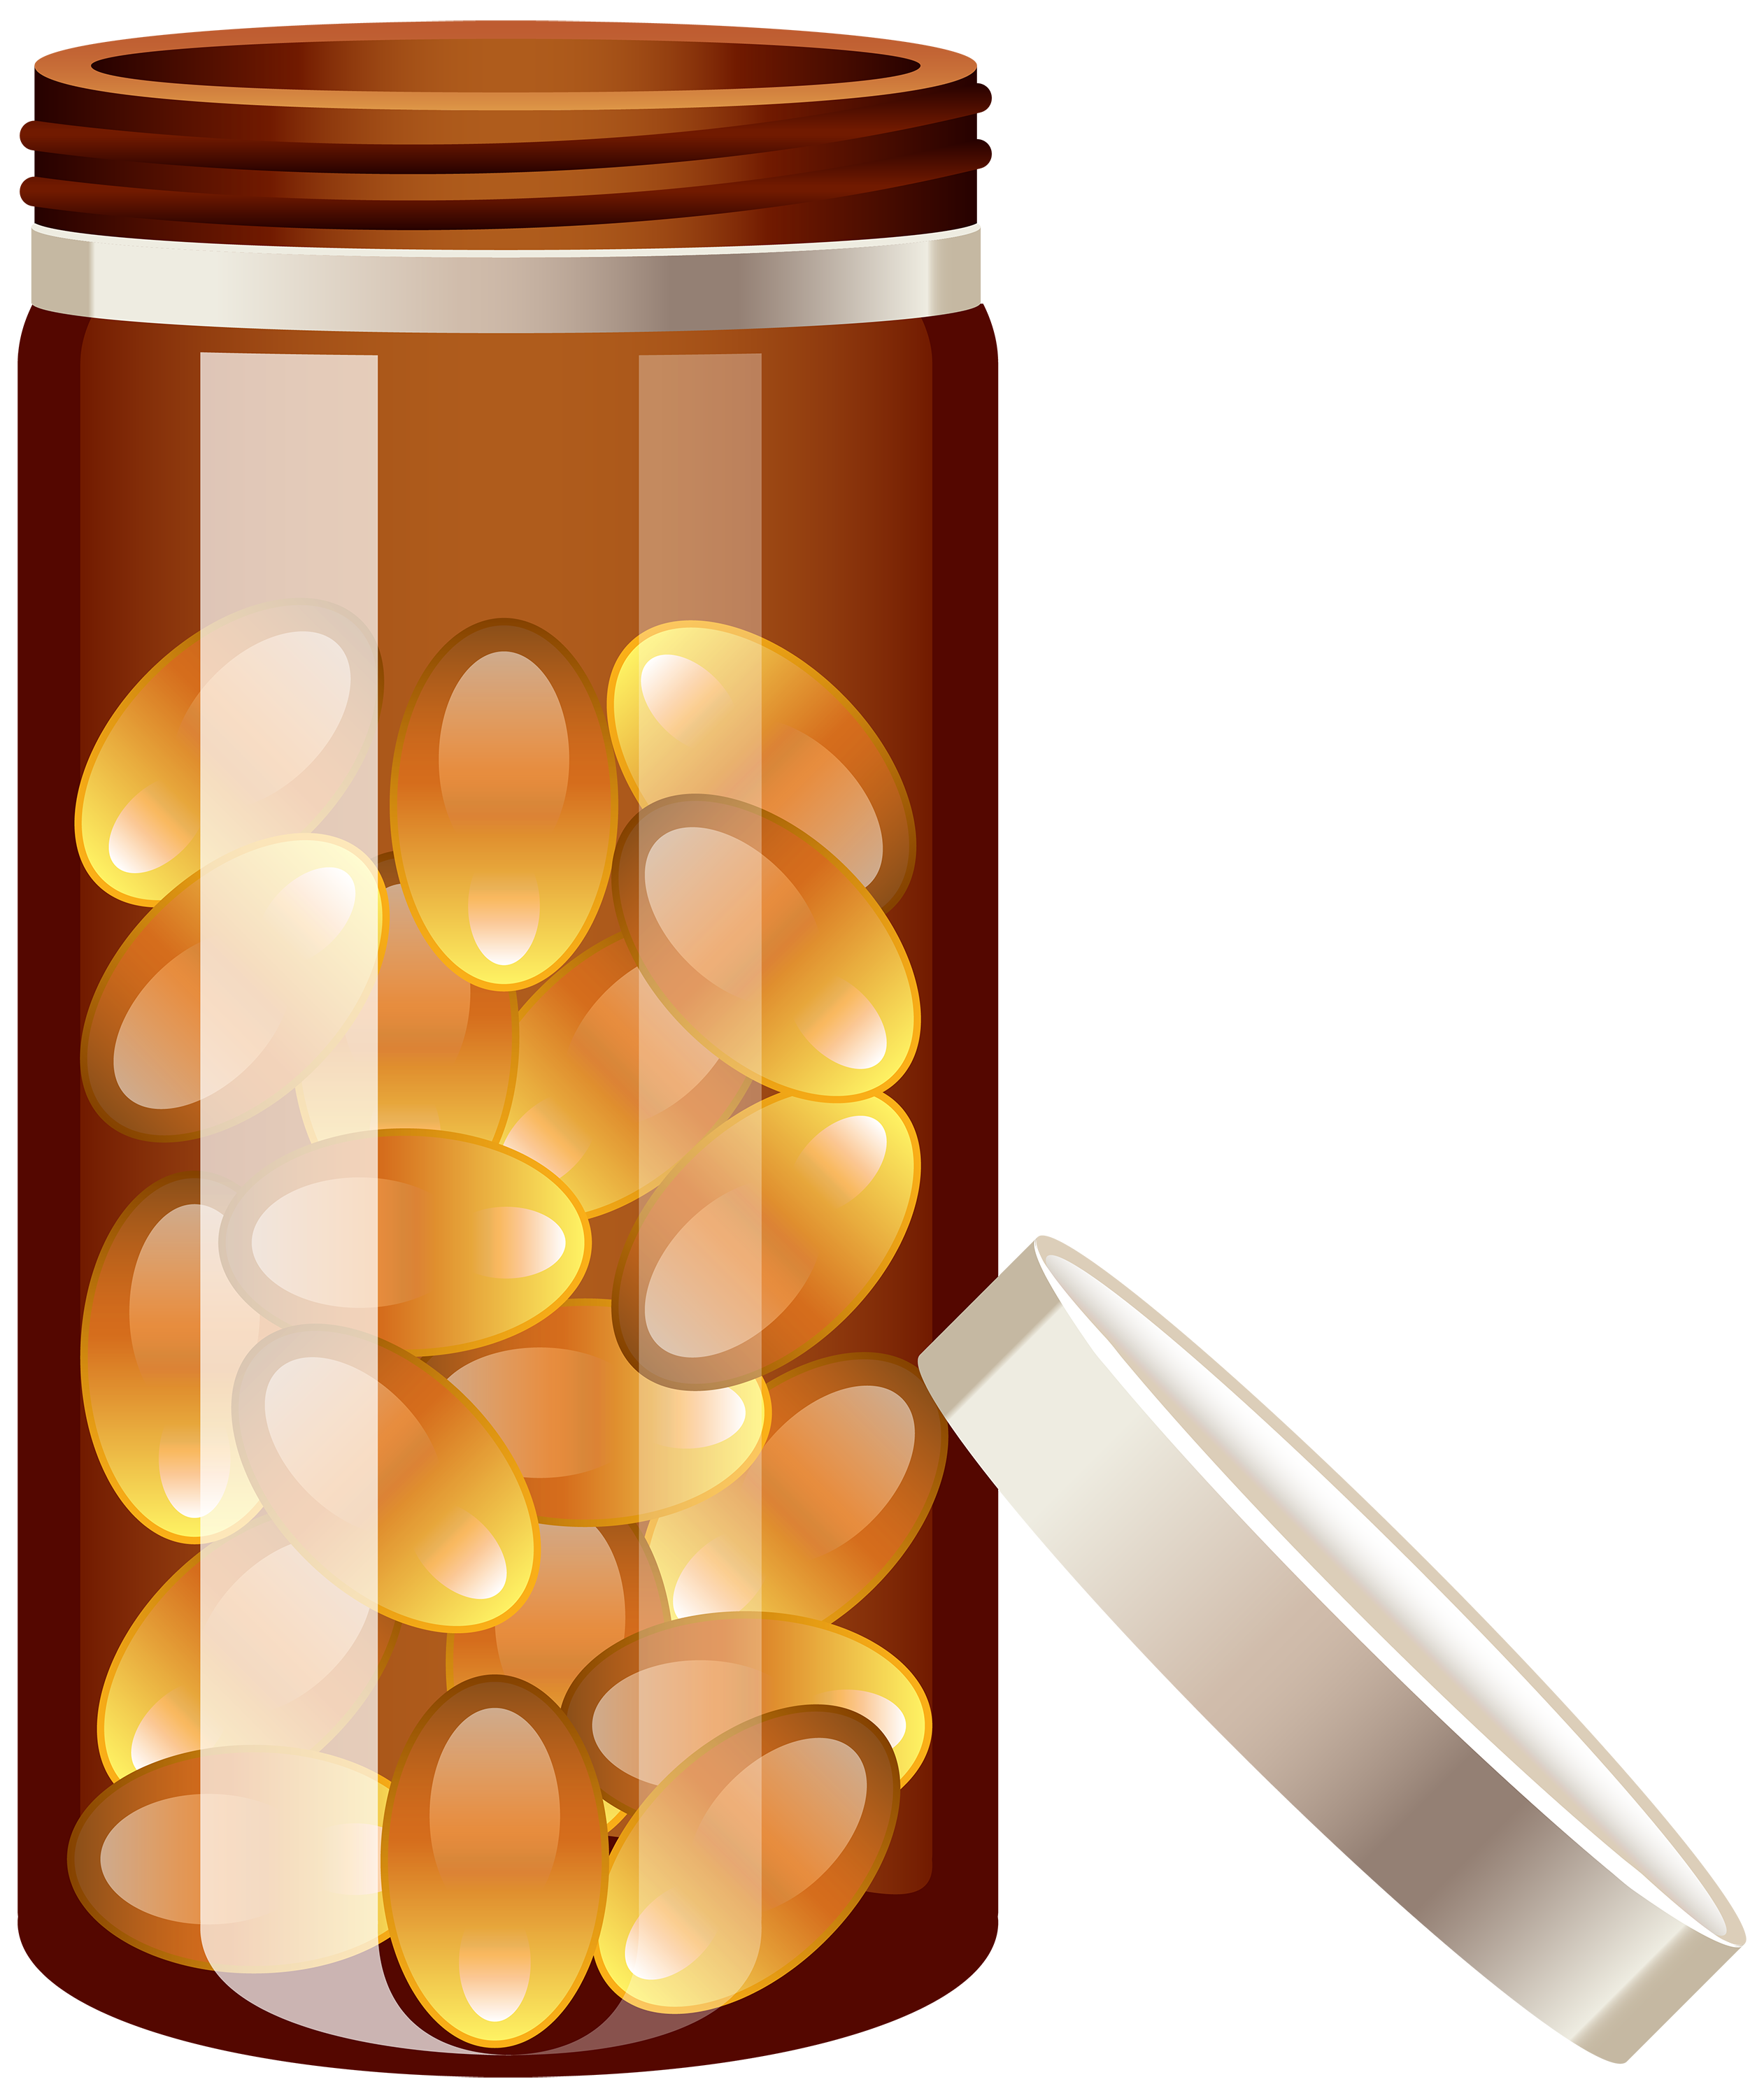 Clipart desktop backgrounds best. Pill bottle png